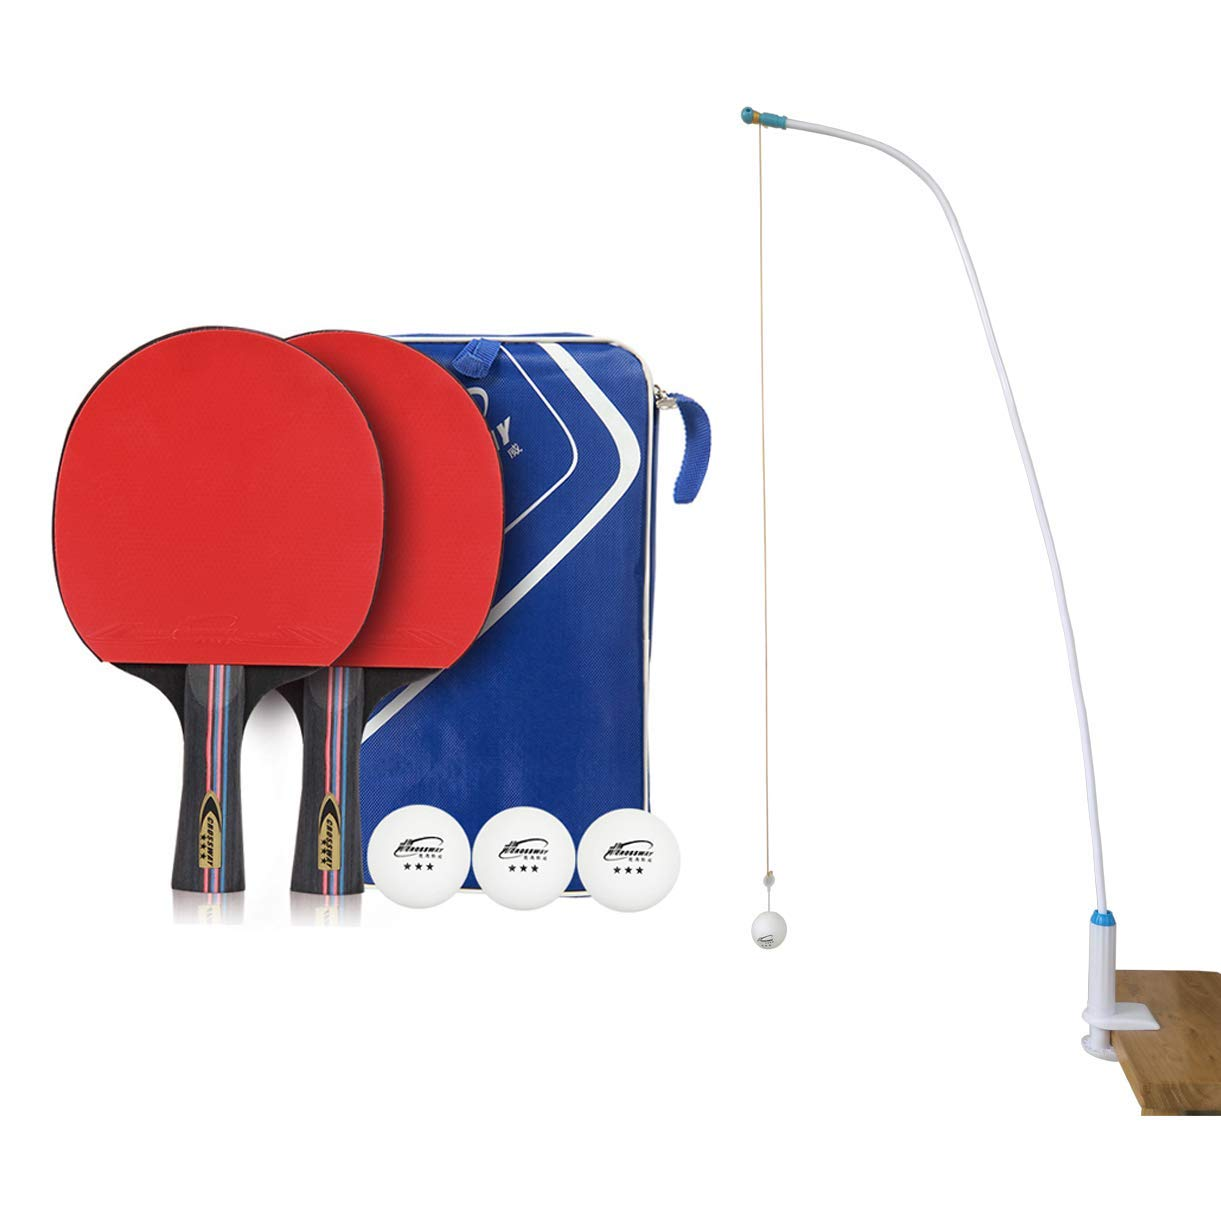 Pinpinpon Table Tennis Trainer, Home and Office Leisure Decompression Sport, Two Table Tennis Rackets with 3 Balls,1 Ping Pong Paddle Case and 1 String Ball Stand/Phone Stand by Pinpinpon